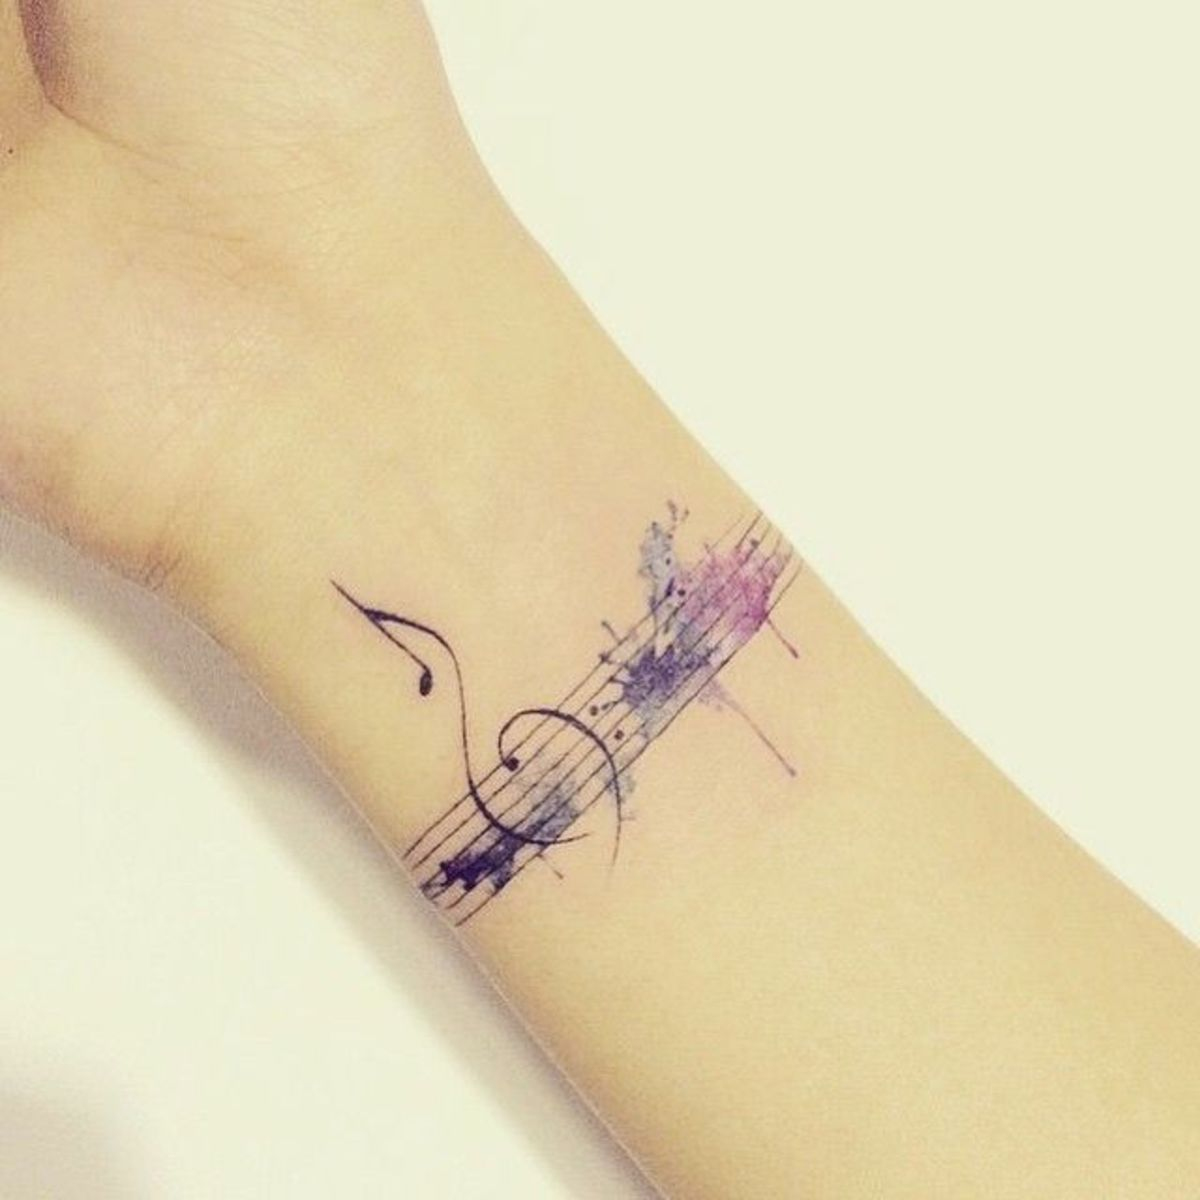 A line of music makes a lovely tattoo bracelet—especially with watercolor.